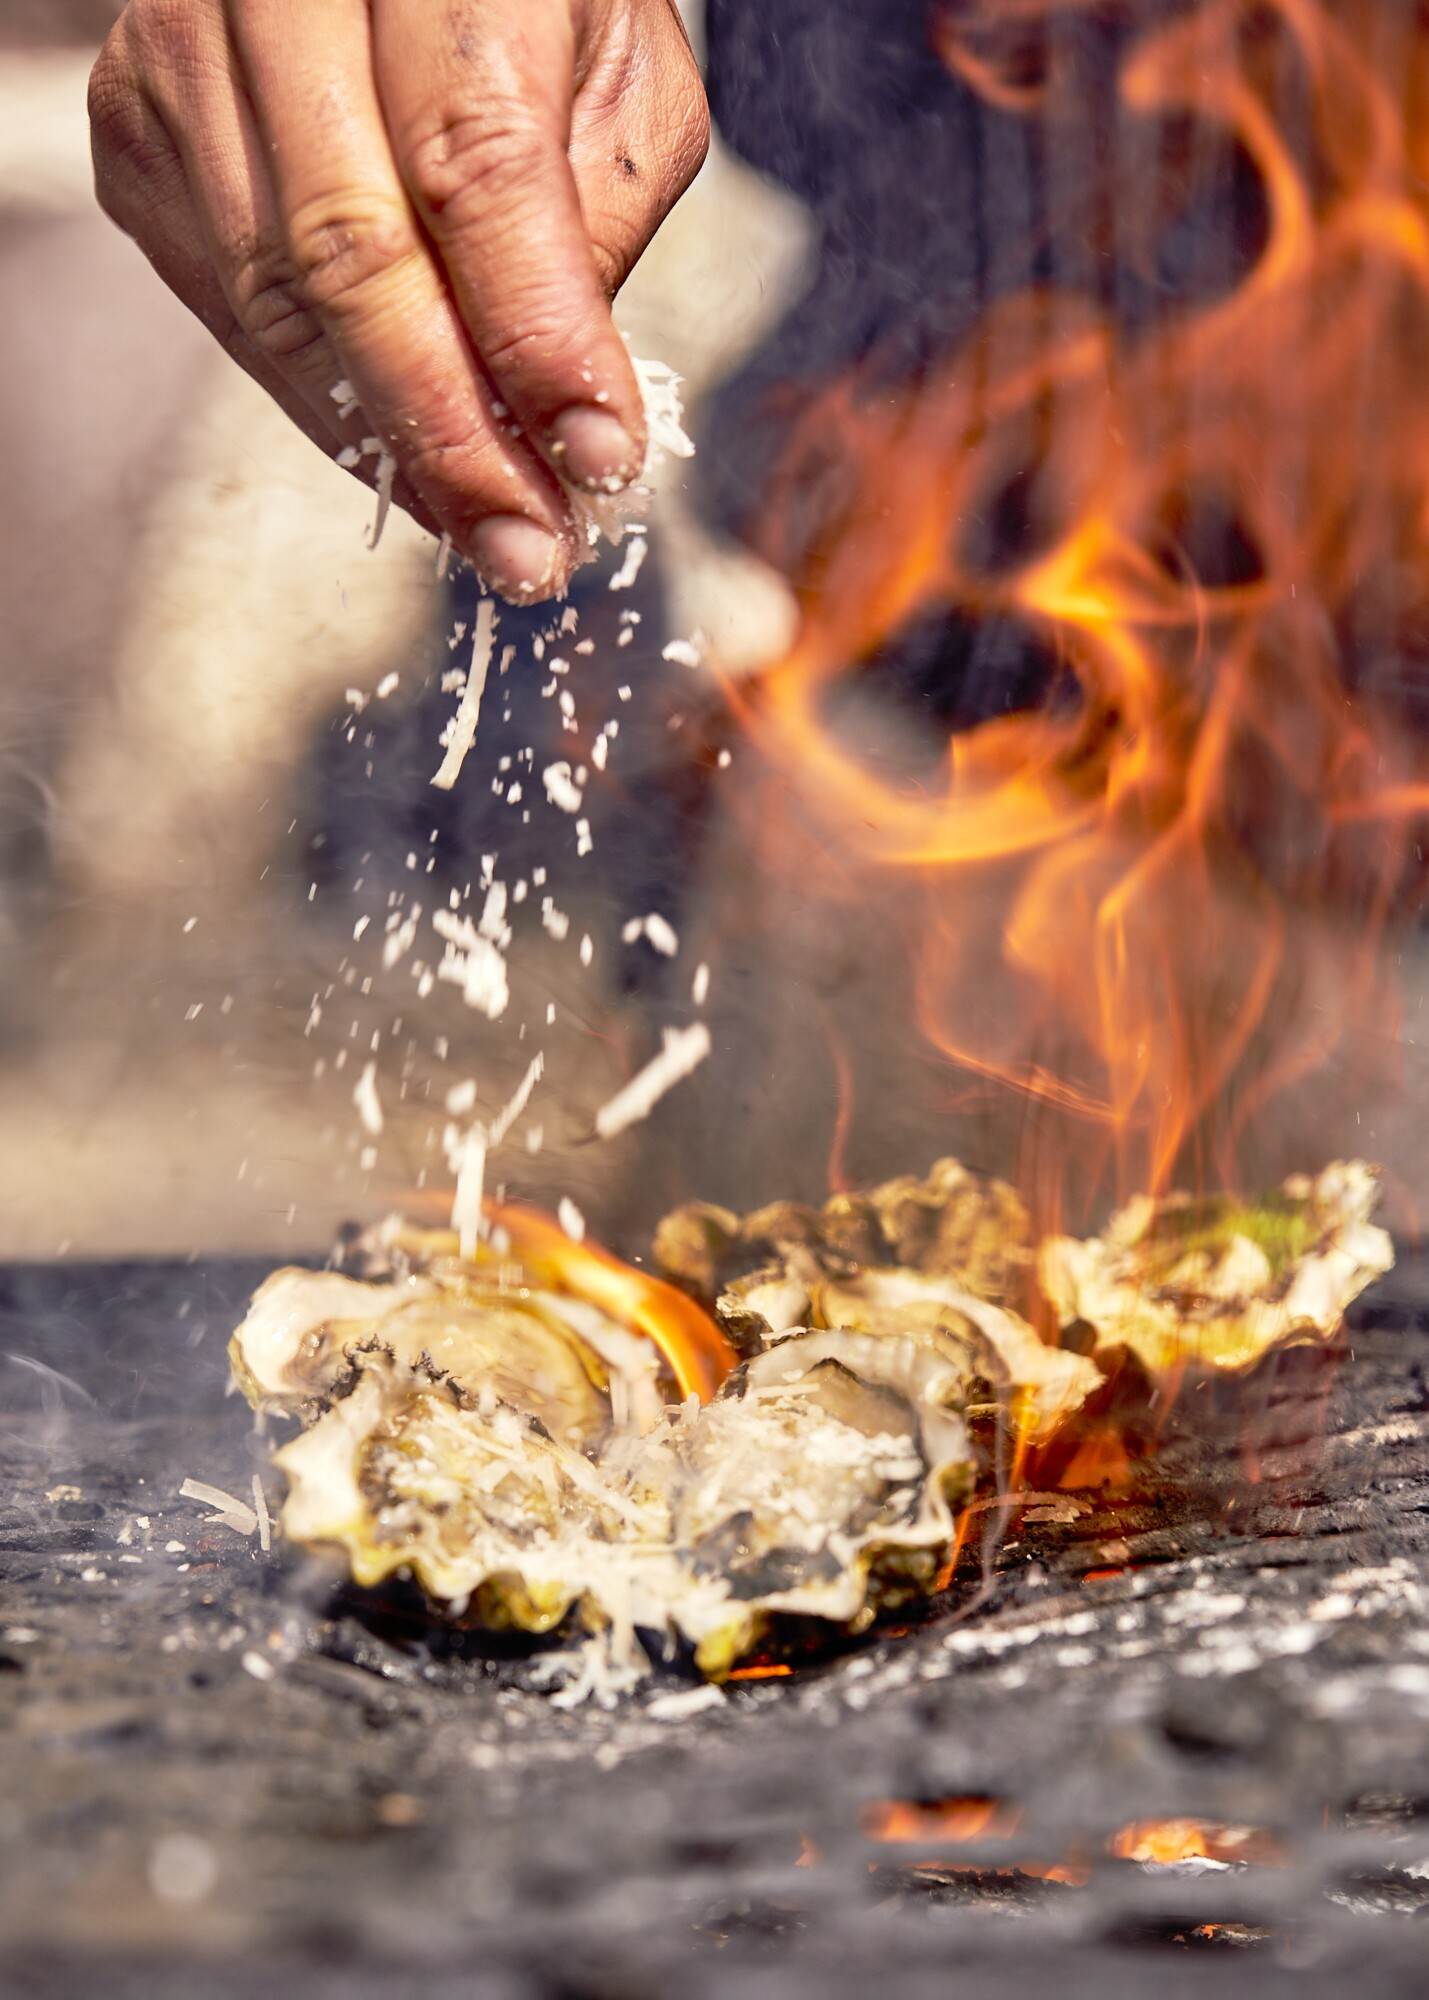 Oysters on the grill at the Manila District in downtown Los Angeles.